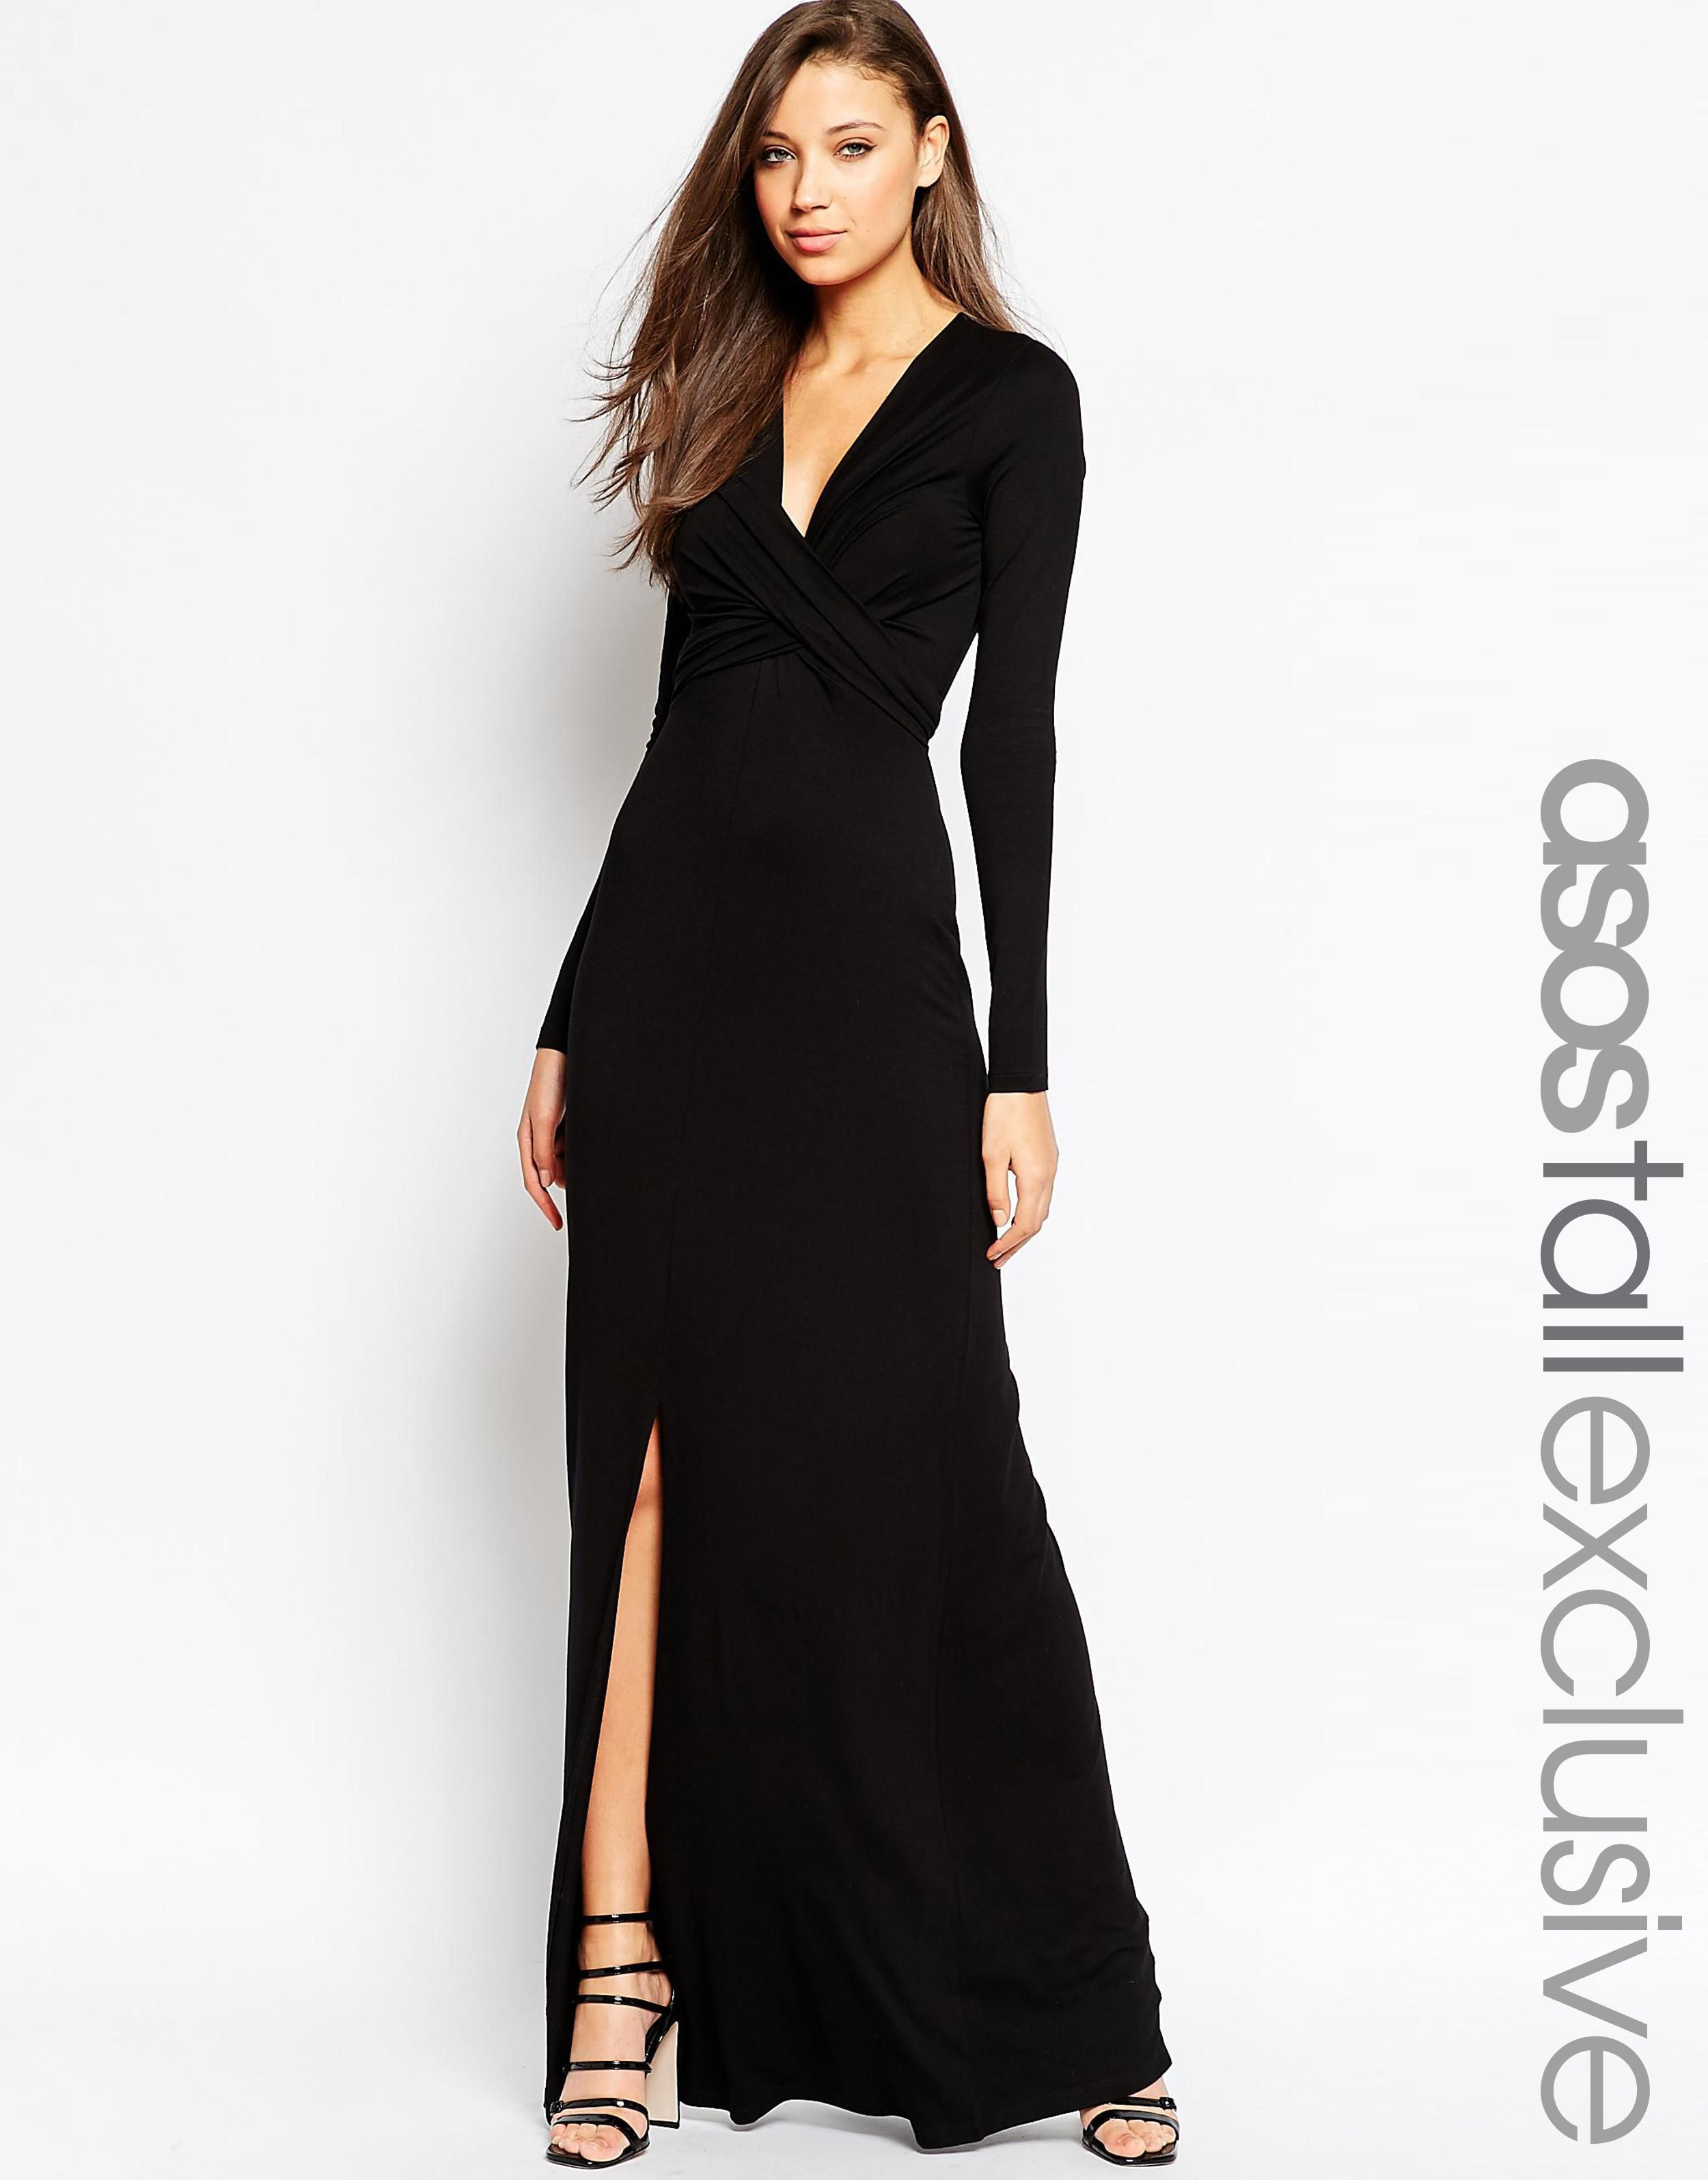 Www Asos Com Asos Tall Wrap Front Maxi Dress With Tie Waist Candice Blackburn Product Page Https Maxi Dress Dress With Tie Maxi Wrap Dress [ 3190 x 2500 Pixel ]